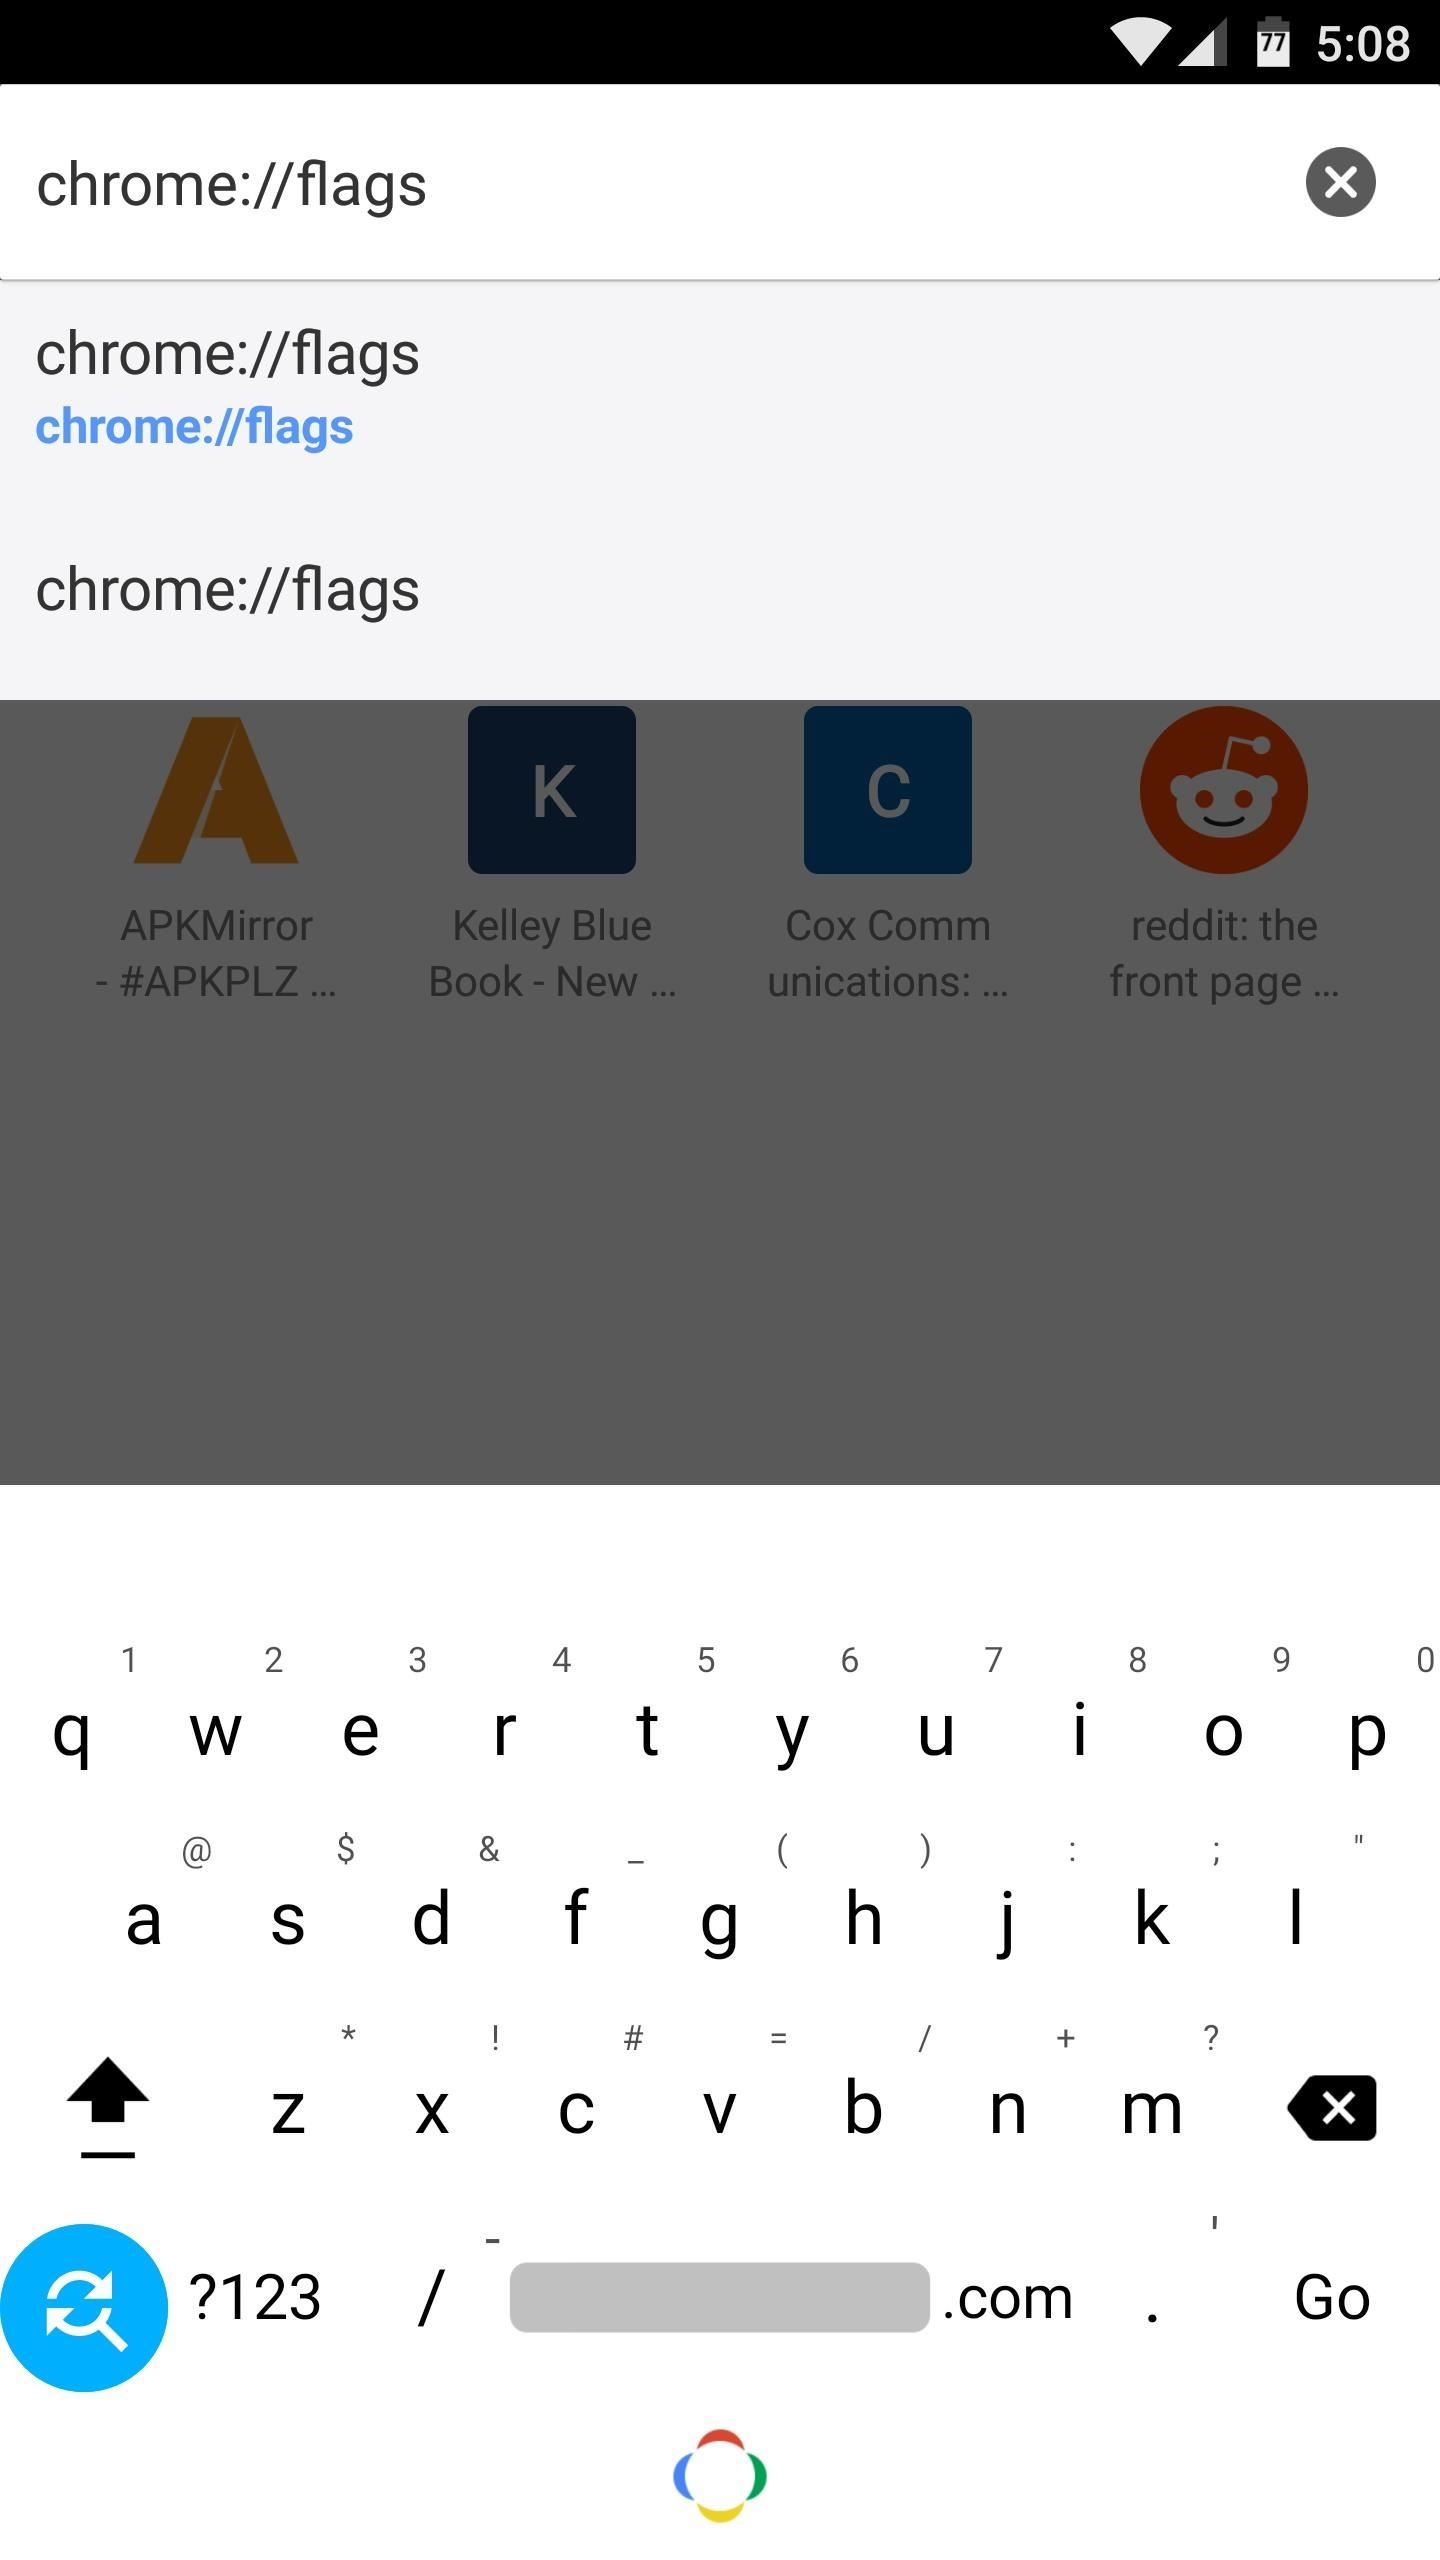 Use Chrome Flags to Prevent Page Load Jumps